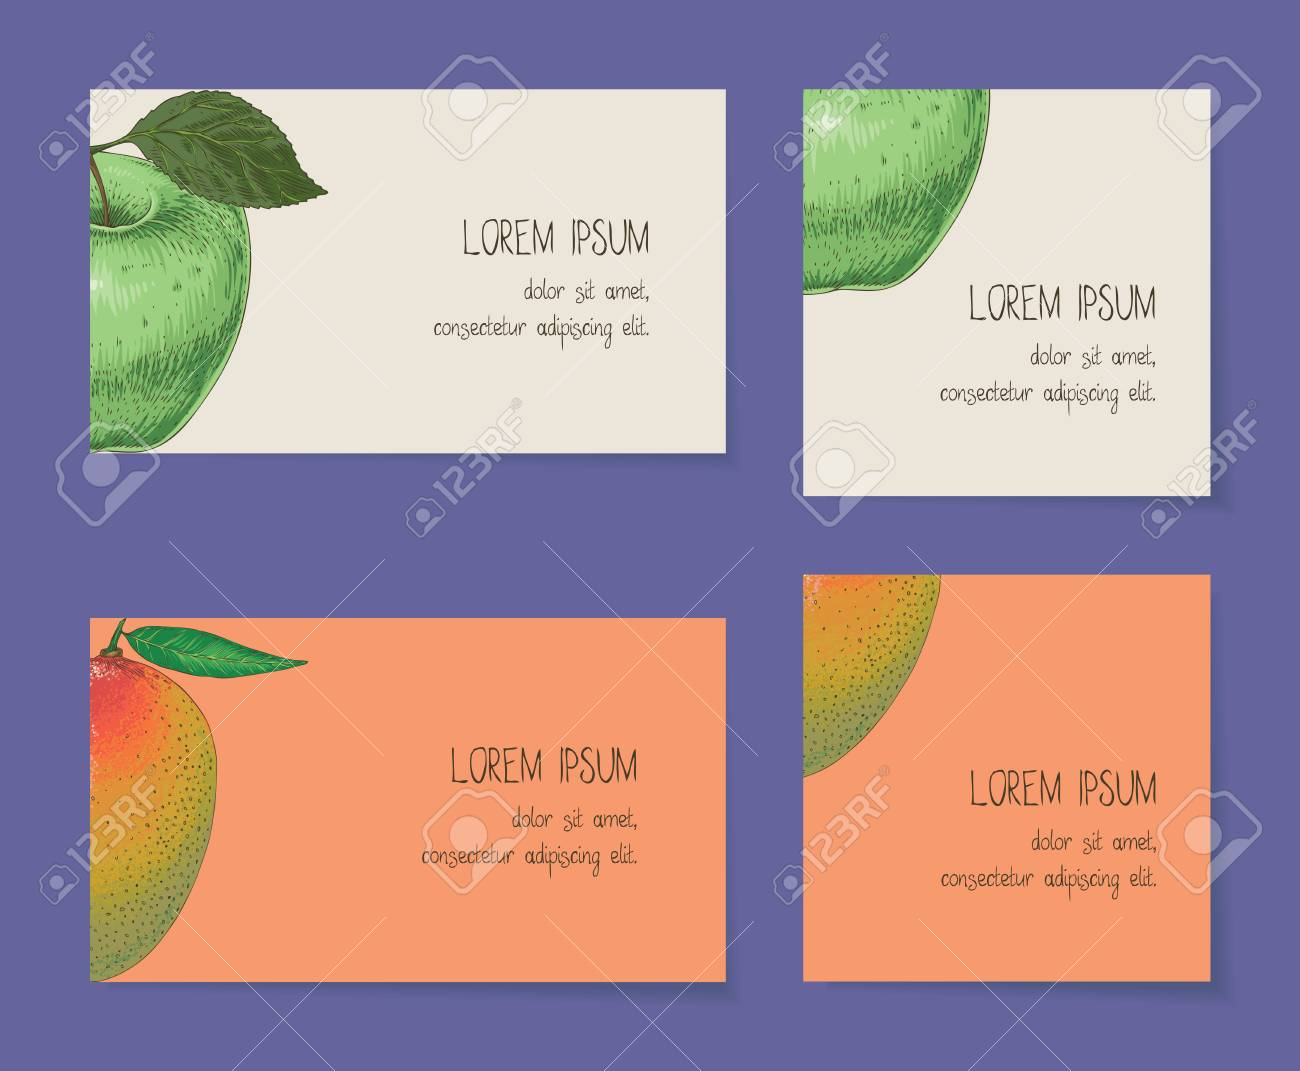 Fruit business cards template collection on a violet background fruit business cards template collection on a violet background apple mango stock photo cheaphphosting Image collections